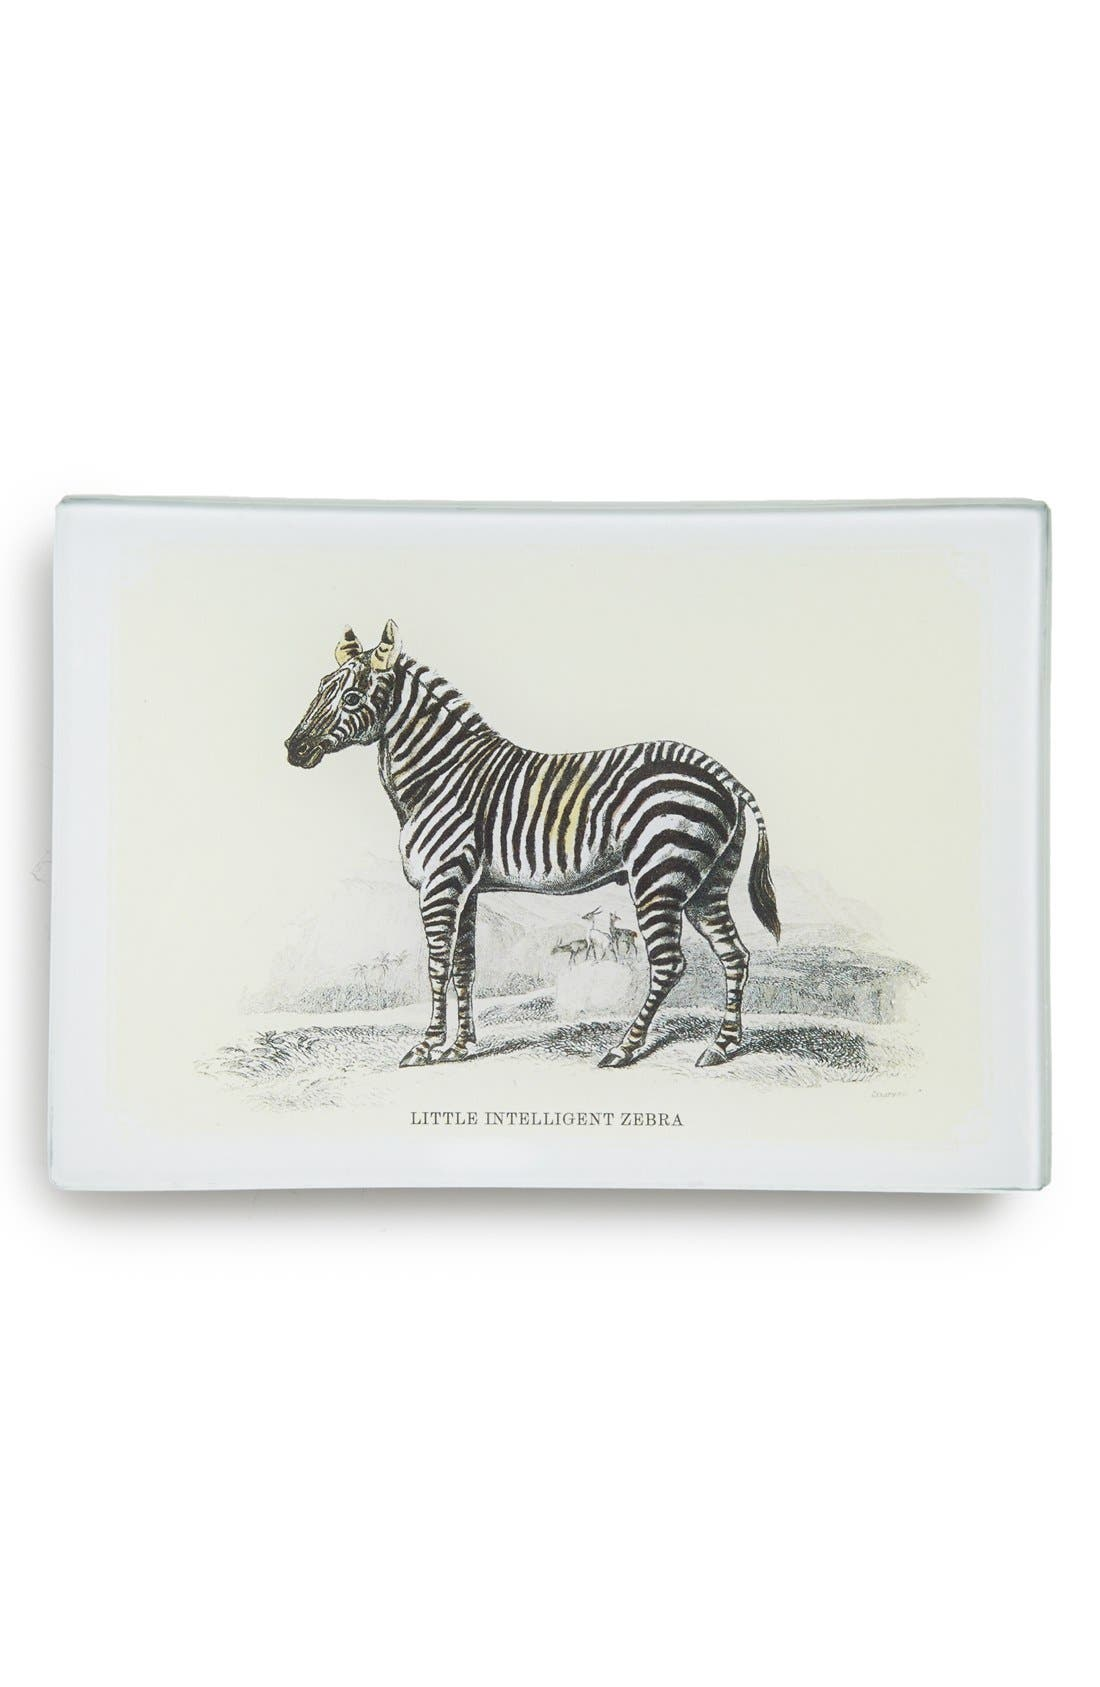 Main Image - Ben's Garden 'Little Intelligent Zebra' Decorative Glass Tray